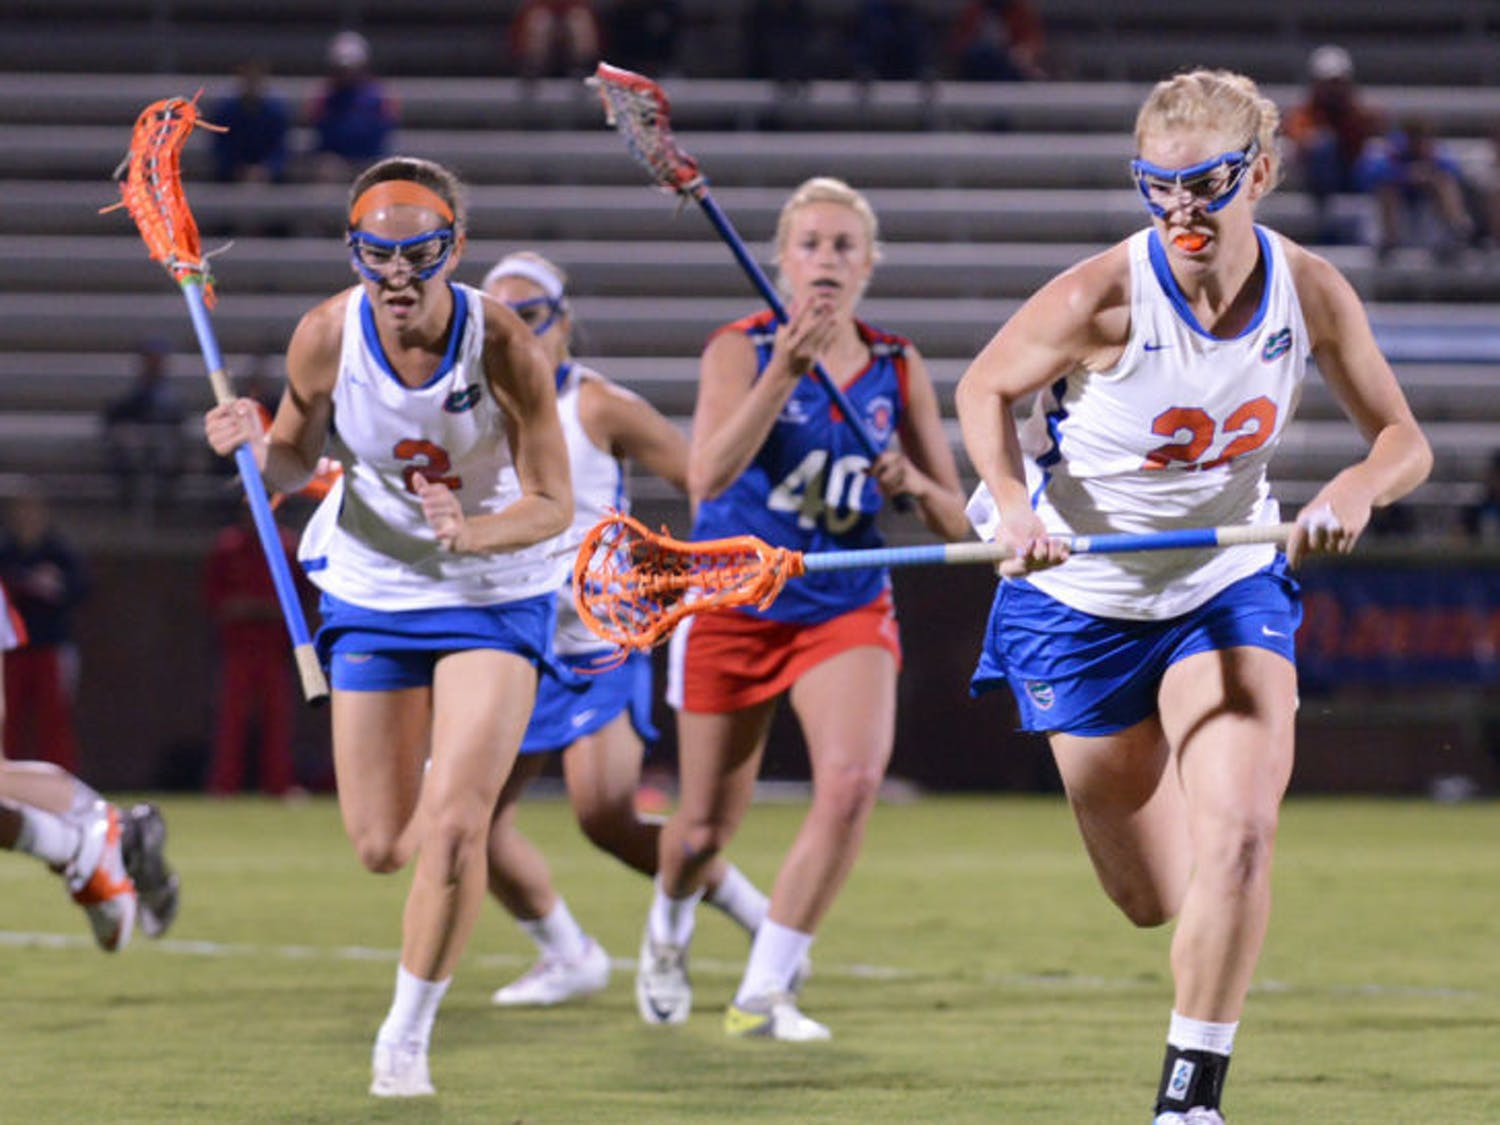 Senior Brittany Dashiell (22) runs after the ball during Florida's 18-13 exhibition win against England on Jan. 24 at Dizney Stadium. Dashiell became the first Gator to record 200 career draw controls on Saturday.